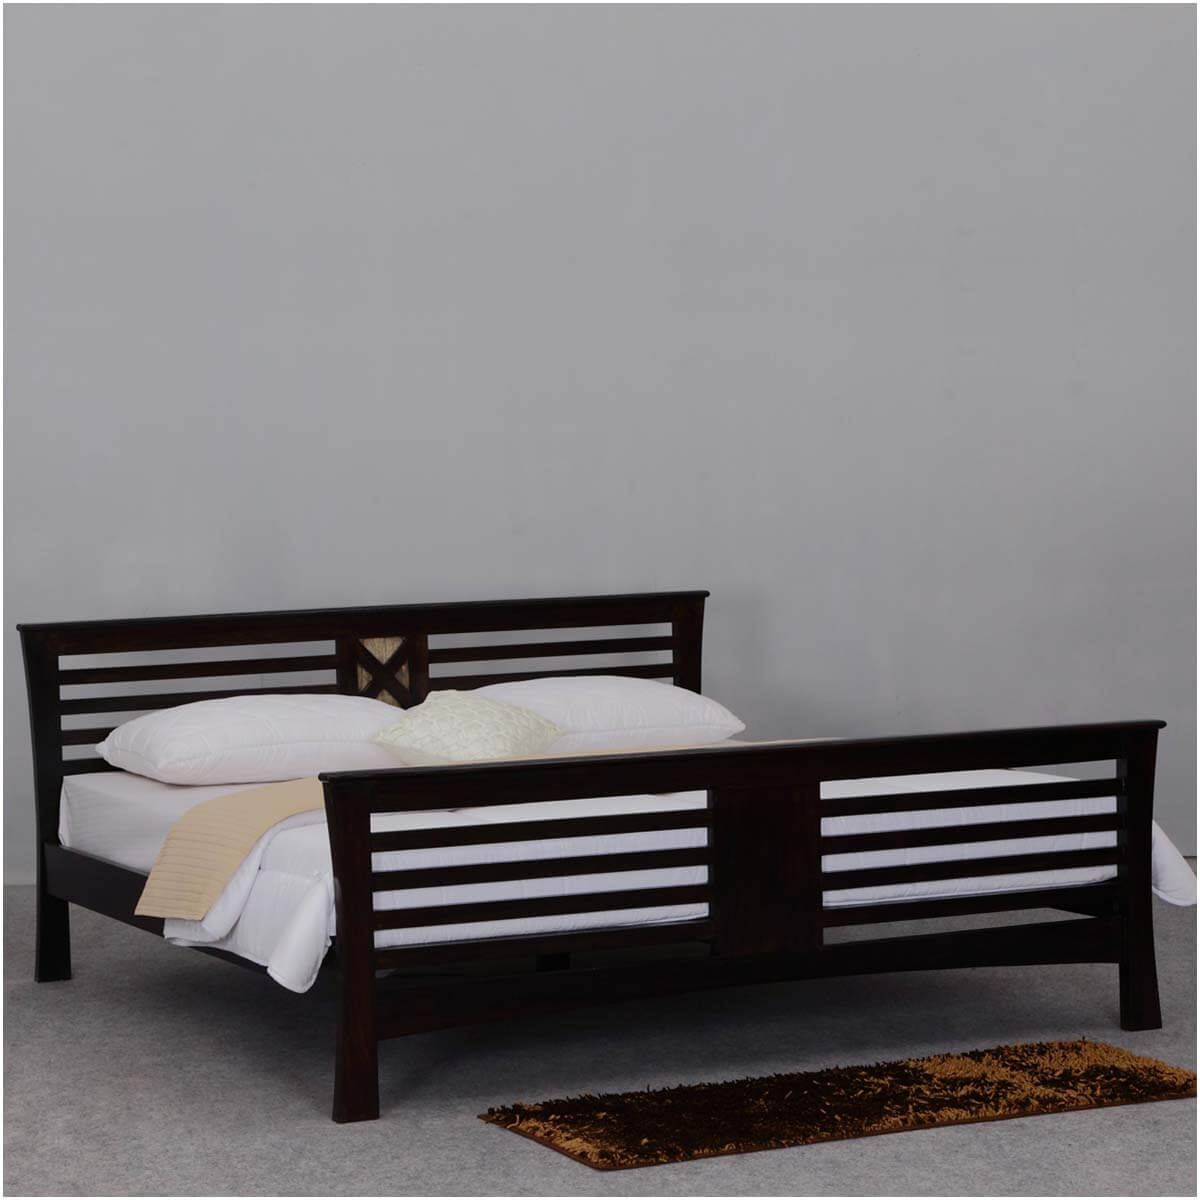 Texas Solid Wood King Size Platform Bed Frame W Headboard